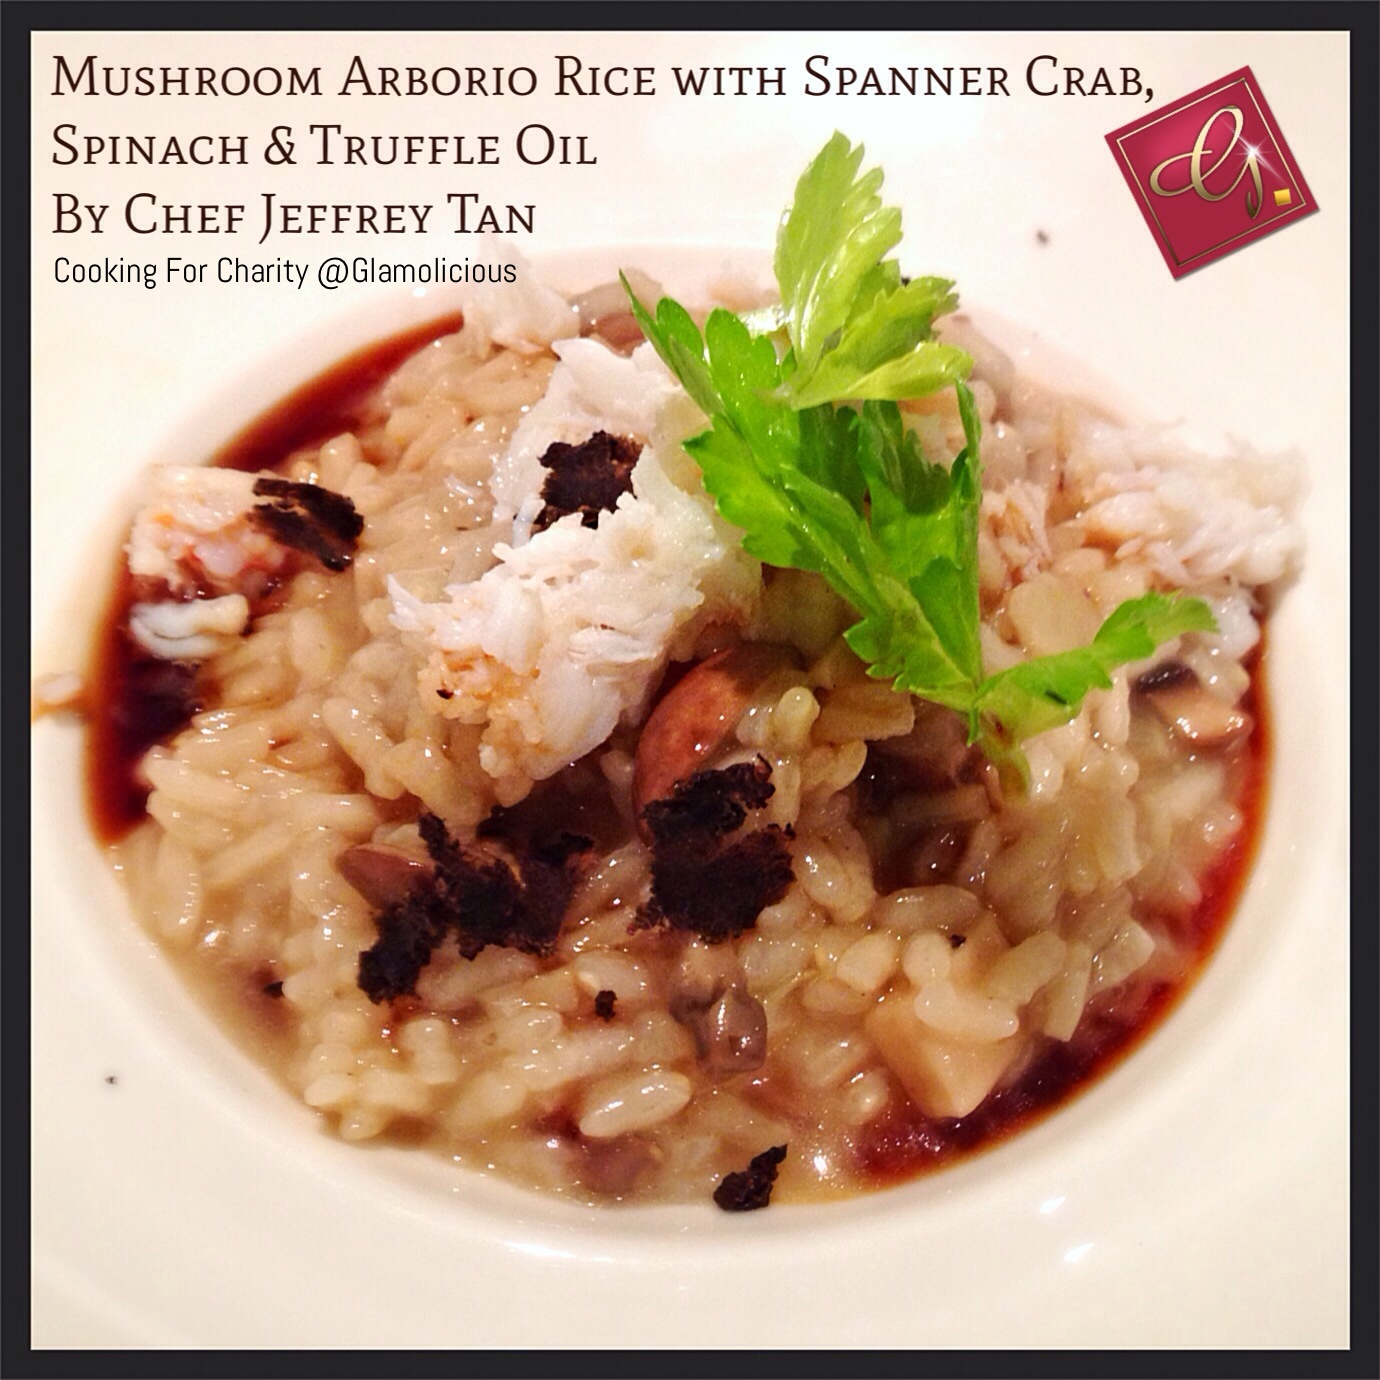 Queensland Spanner Crab Meat, Mushroom Arborio Rice, Spinach, Truffle Oil by Chef Jeffrey Tan